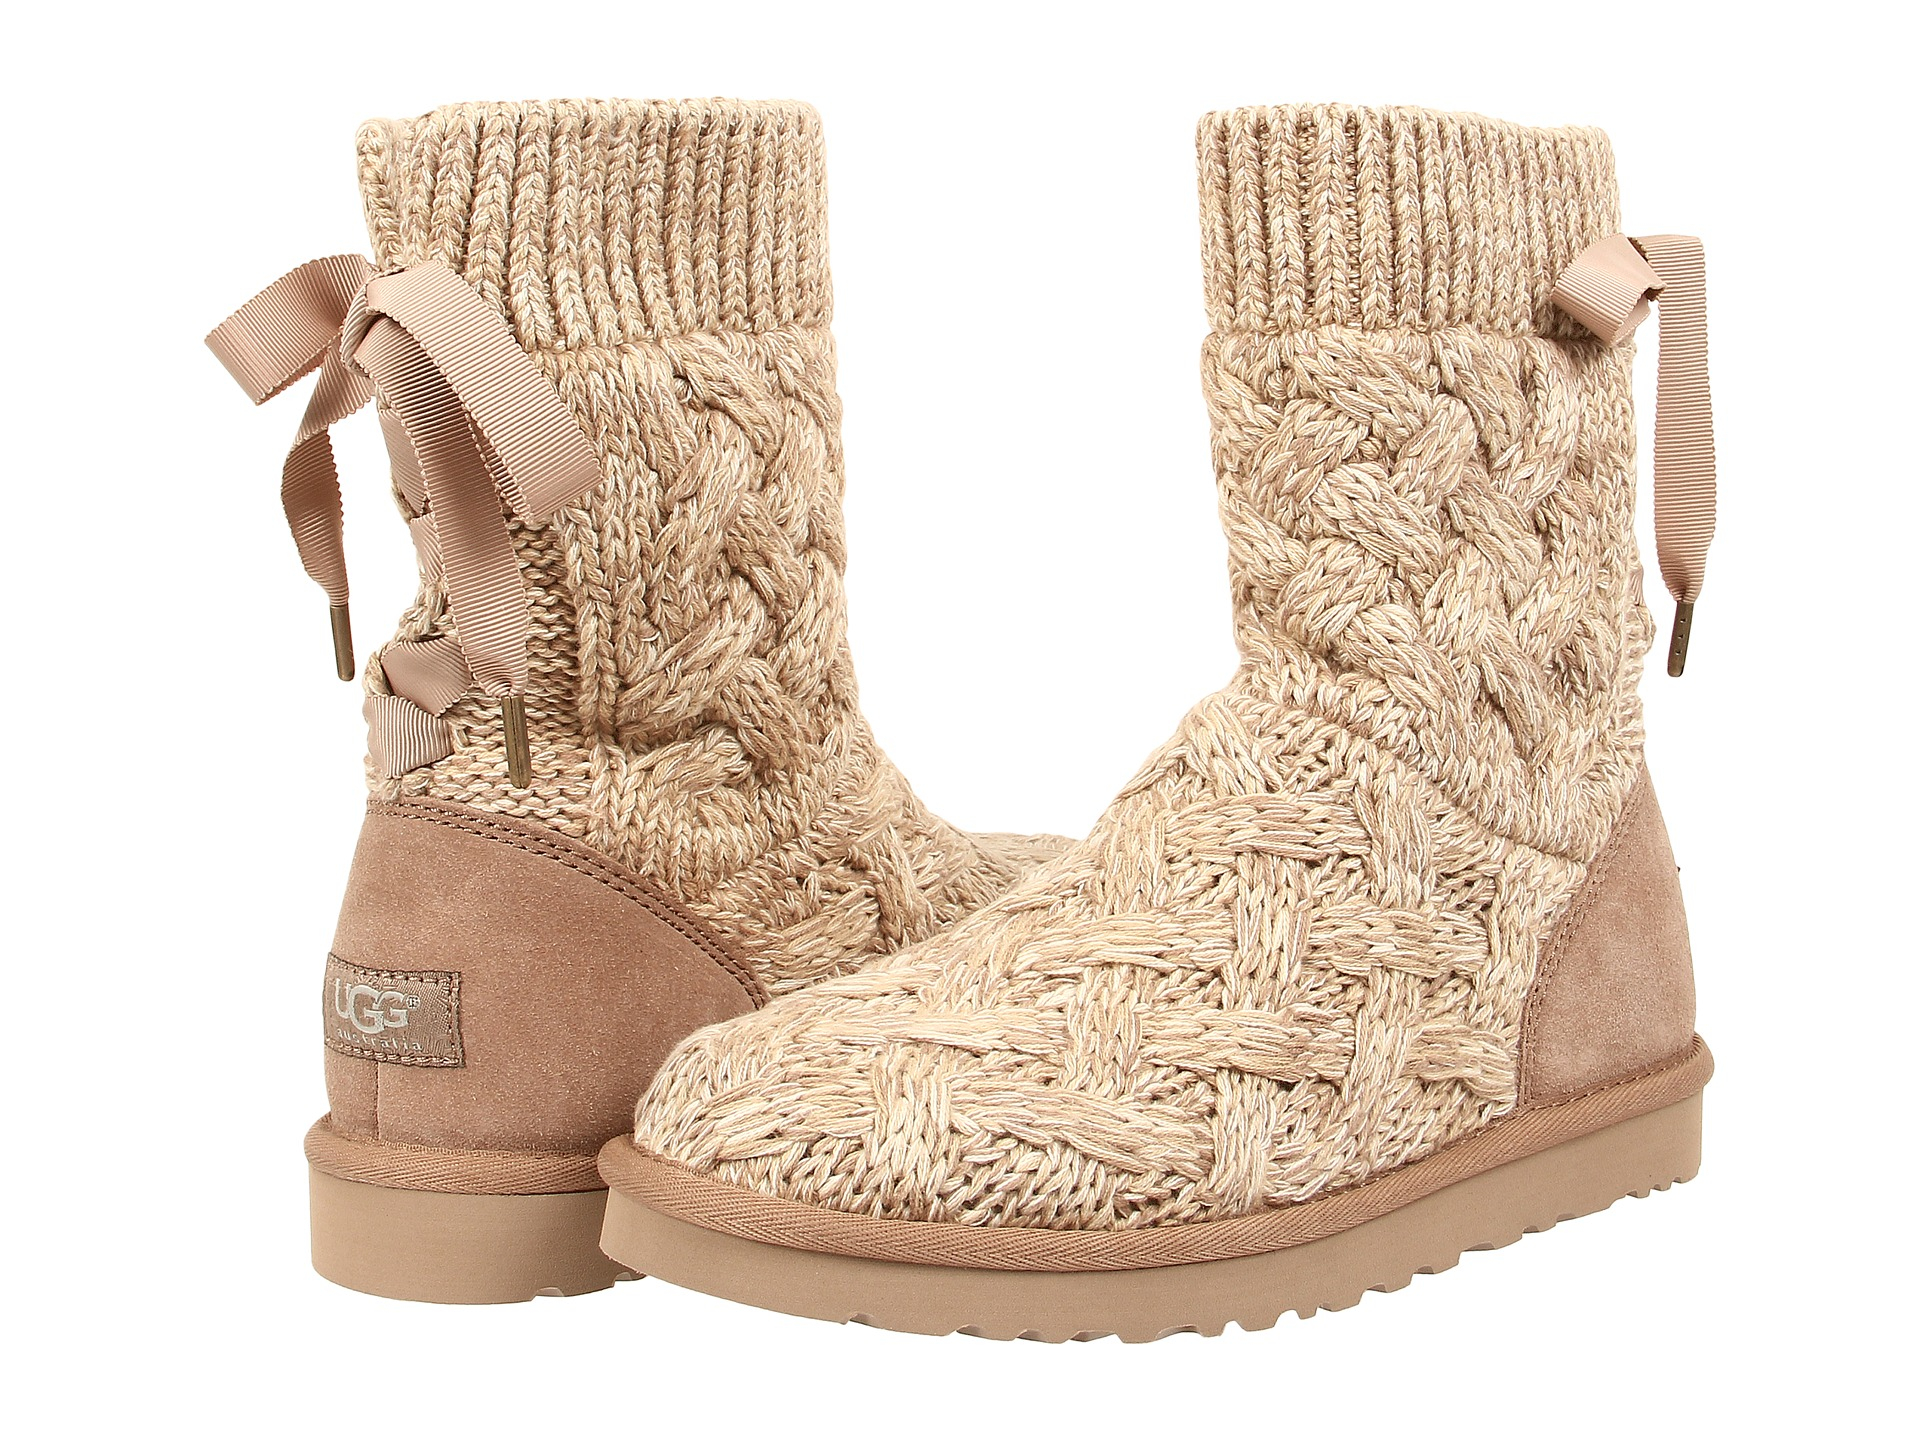 knit uggs with bow